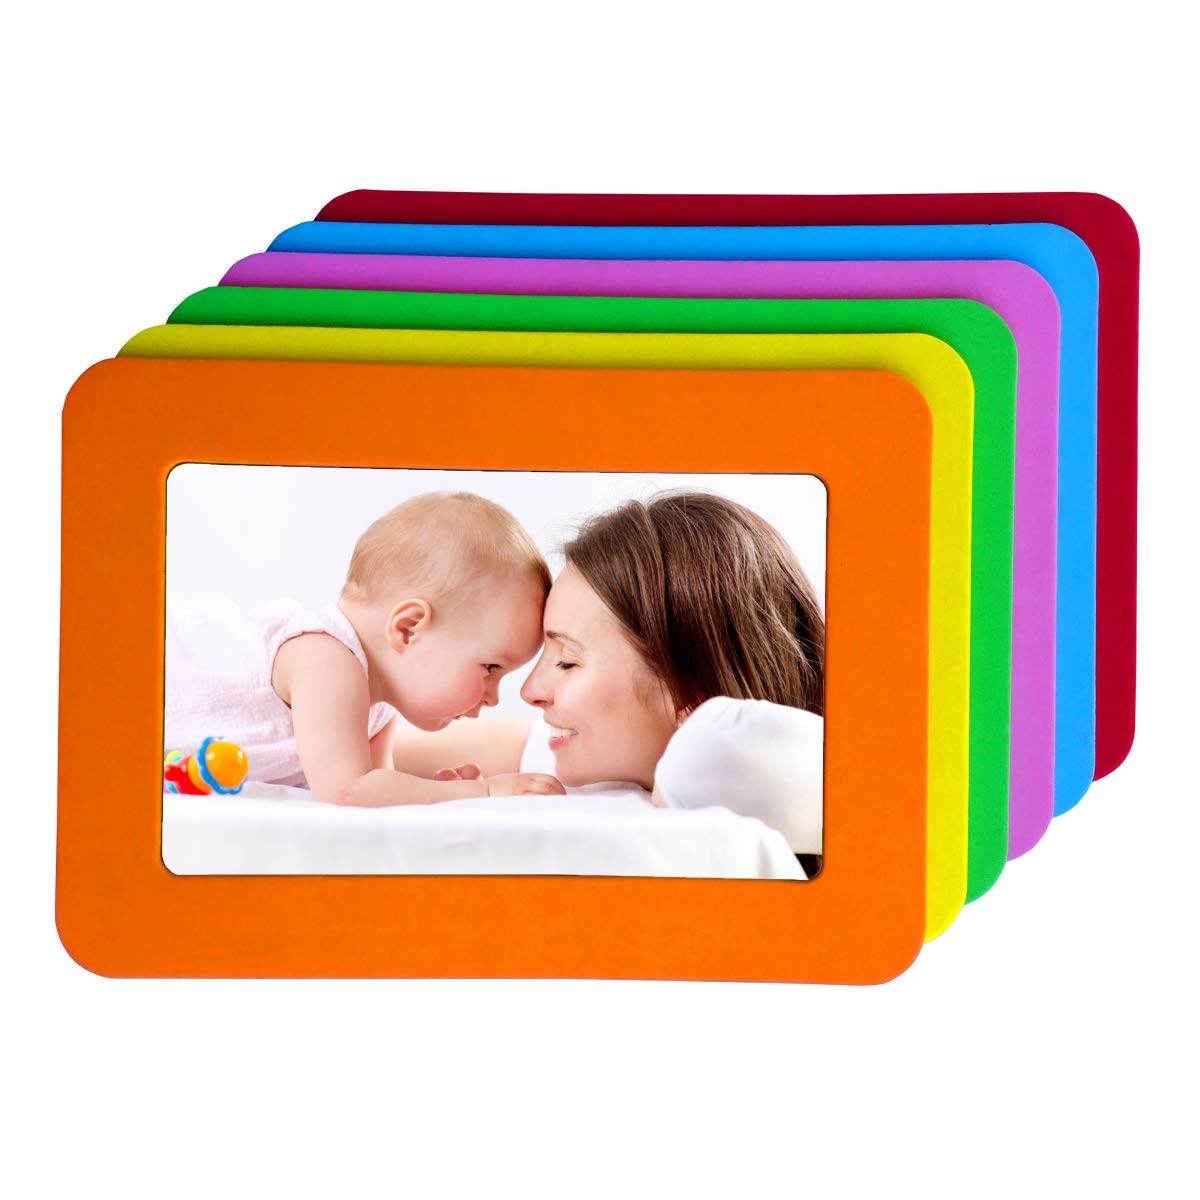 4x6 Magnetic Picture Frames Colorful Magnetic Photo Frames for Refrigerator 4x6 Magnet Frame Thick Strong Magnet Photo Frame Holder Magnetic Frames Magnets Frame for Iron Material Surface Decor 6 Pack by ToDream